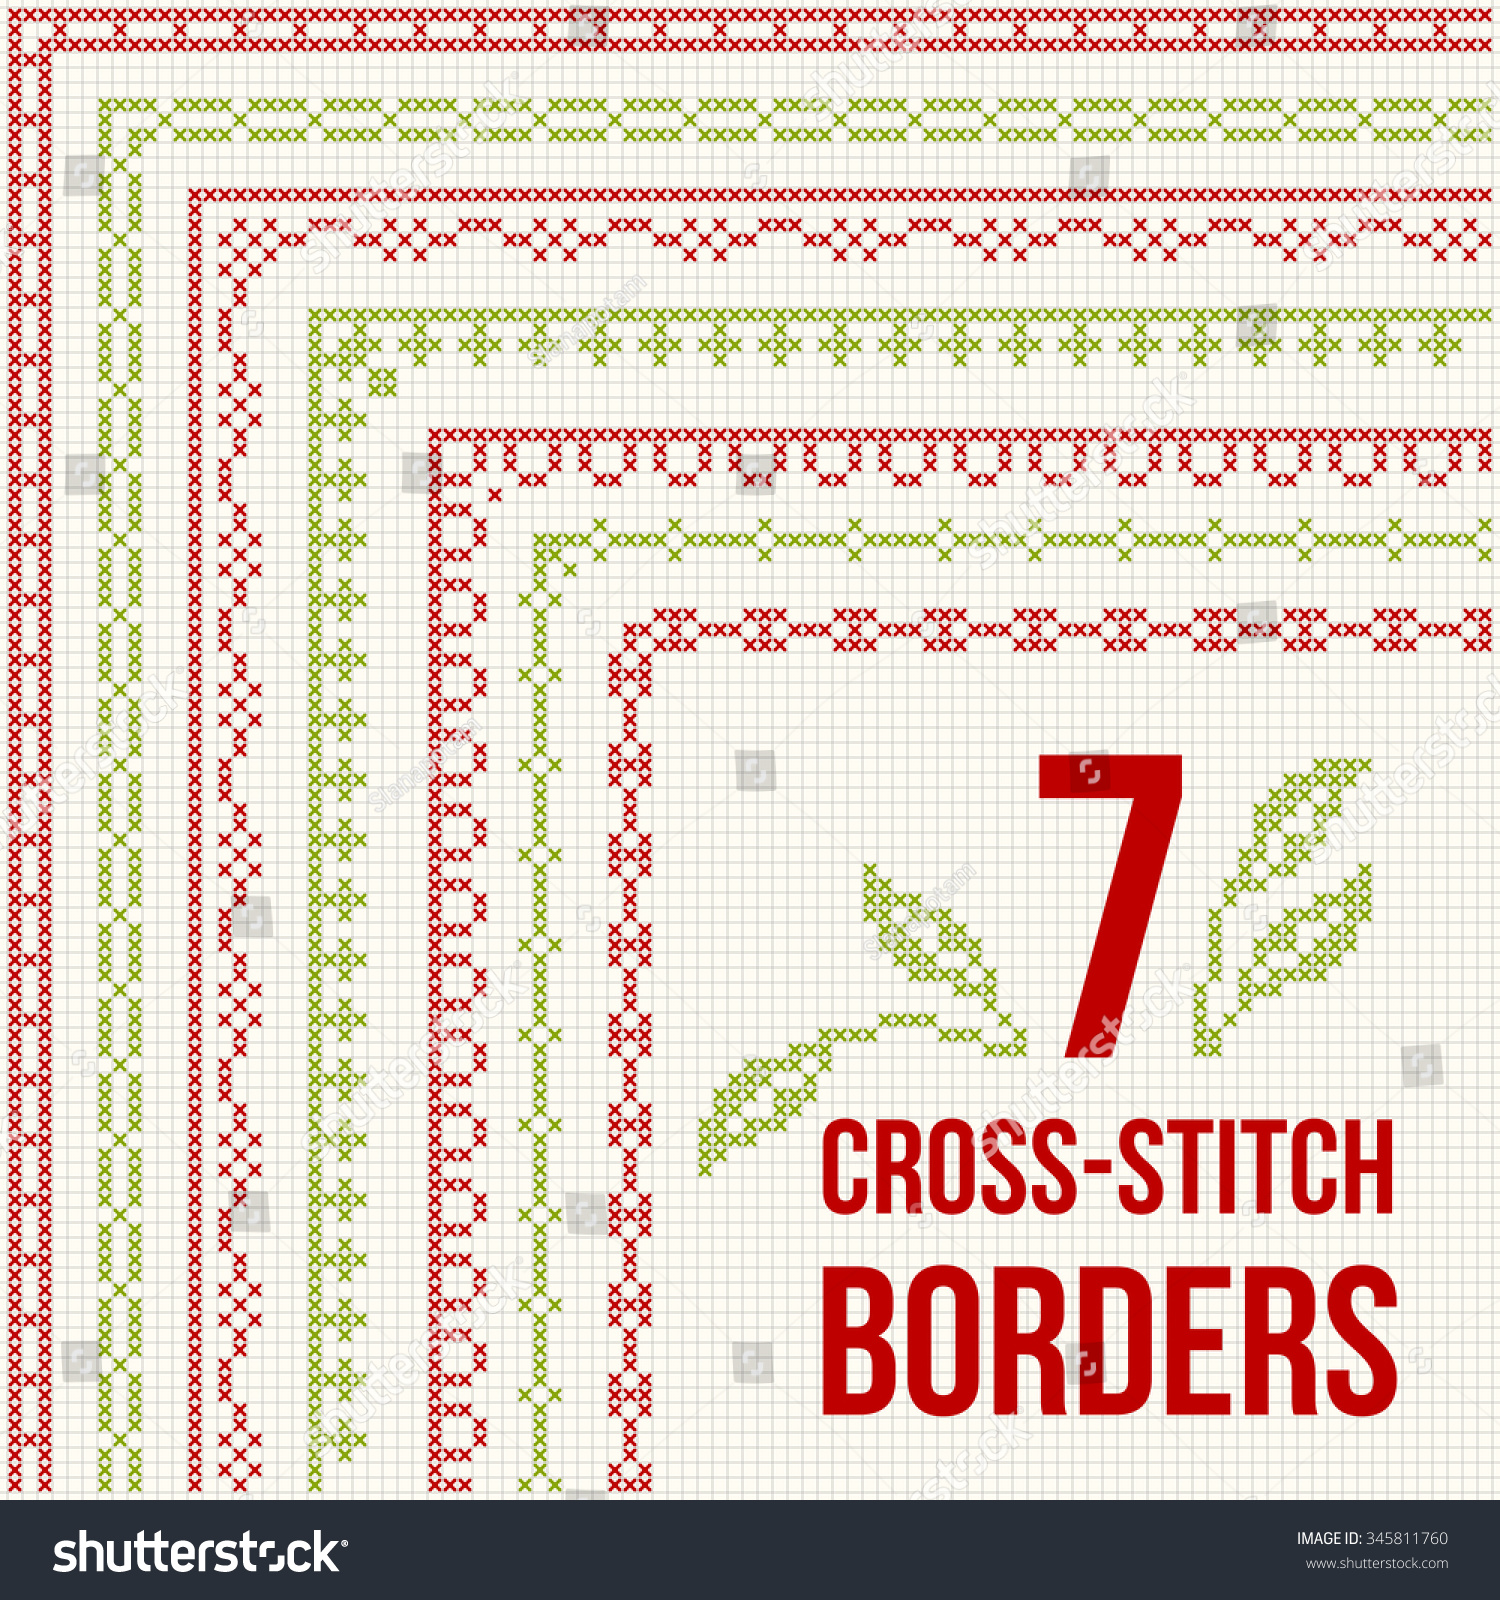 set of cross stitch pattern for thin borders geometric frames for cross stitch embroidery